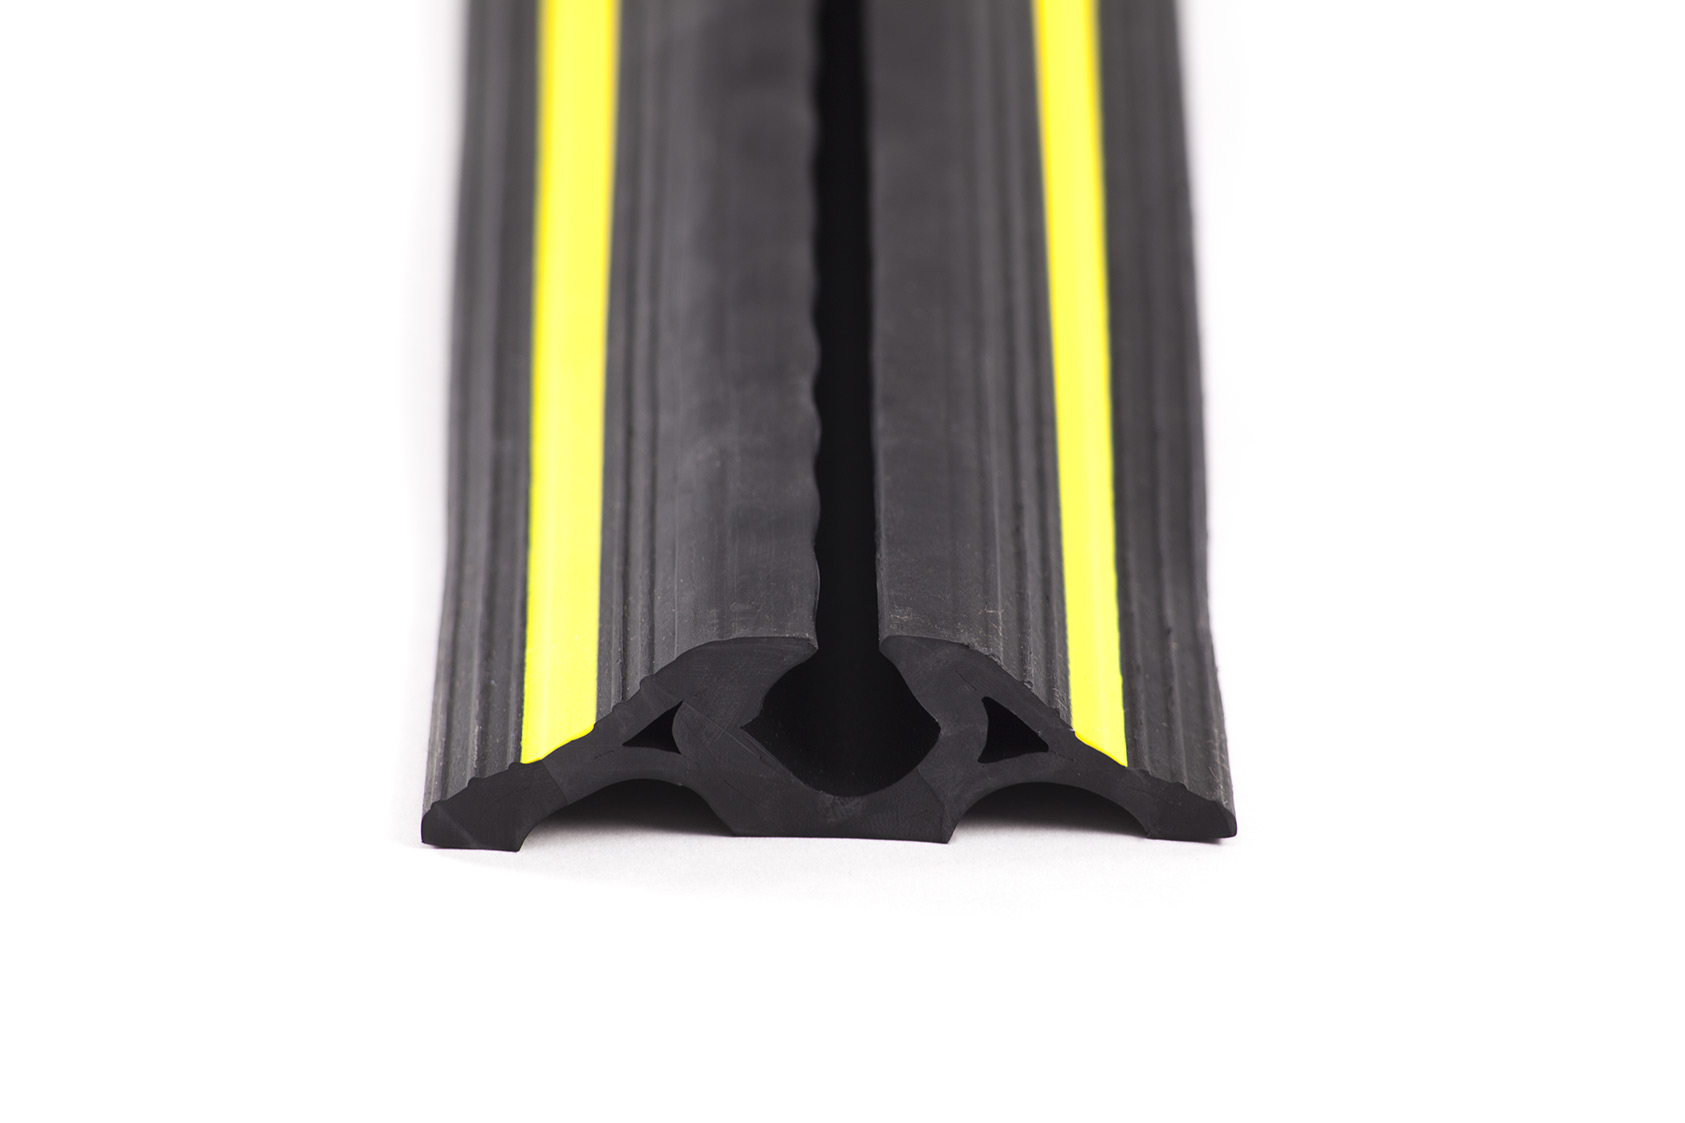 Rubber Cable Covers & Protectors - The Ramp People